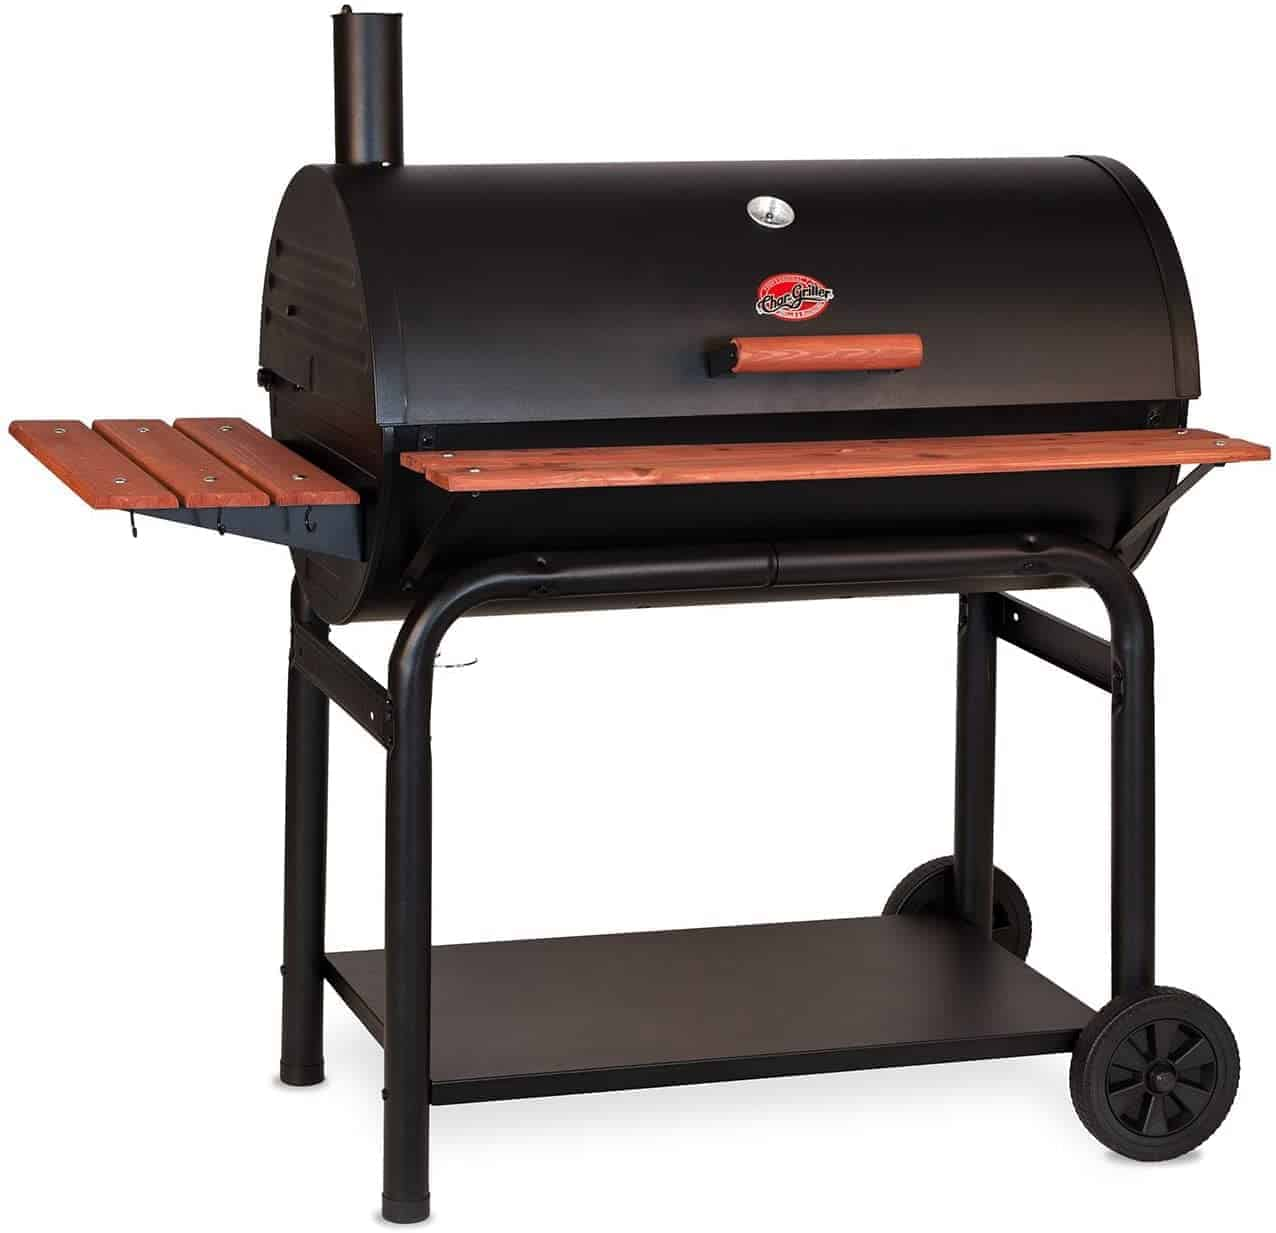 Char-Griller Outlaw Charcoal Grill and Smoker - everymanscave.com